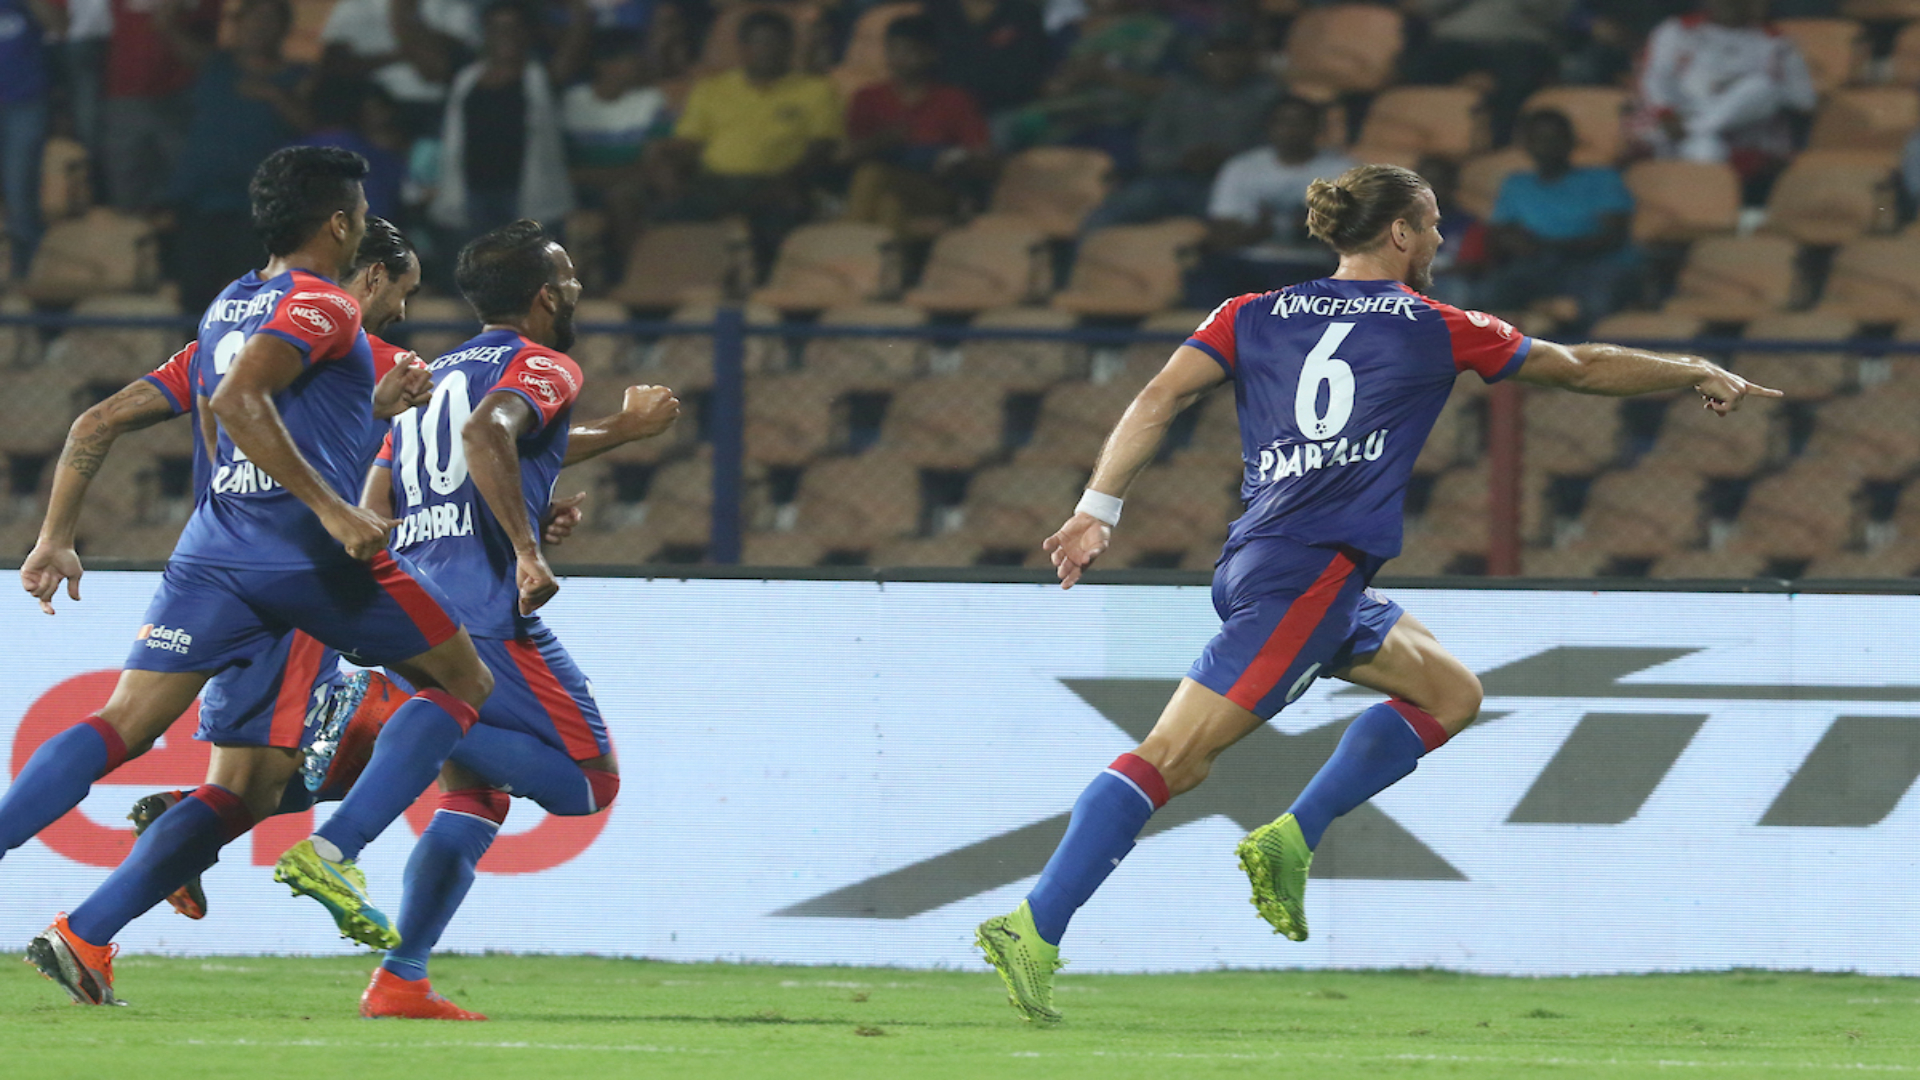 ISL 2019-20: All-round performance marks memorable night for Bengaluru FC's Erik Paartalu